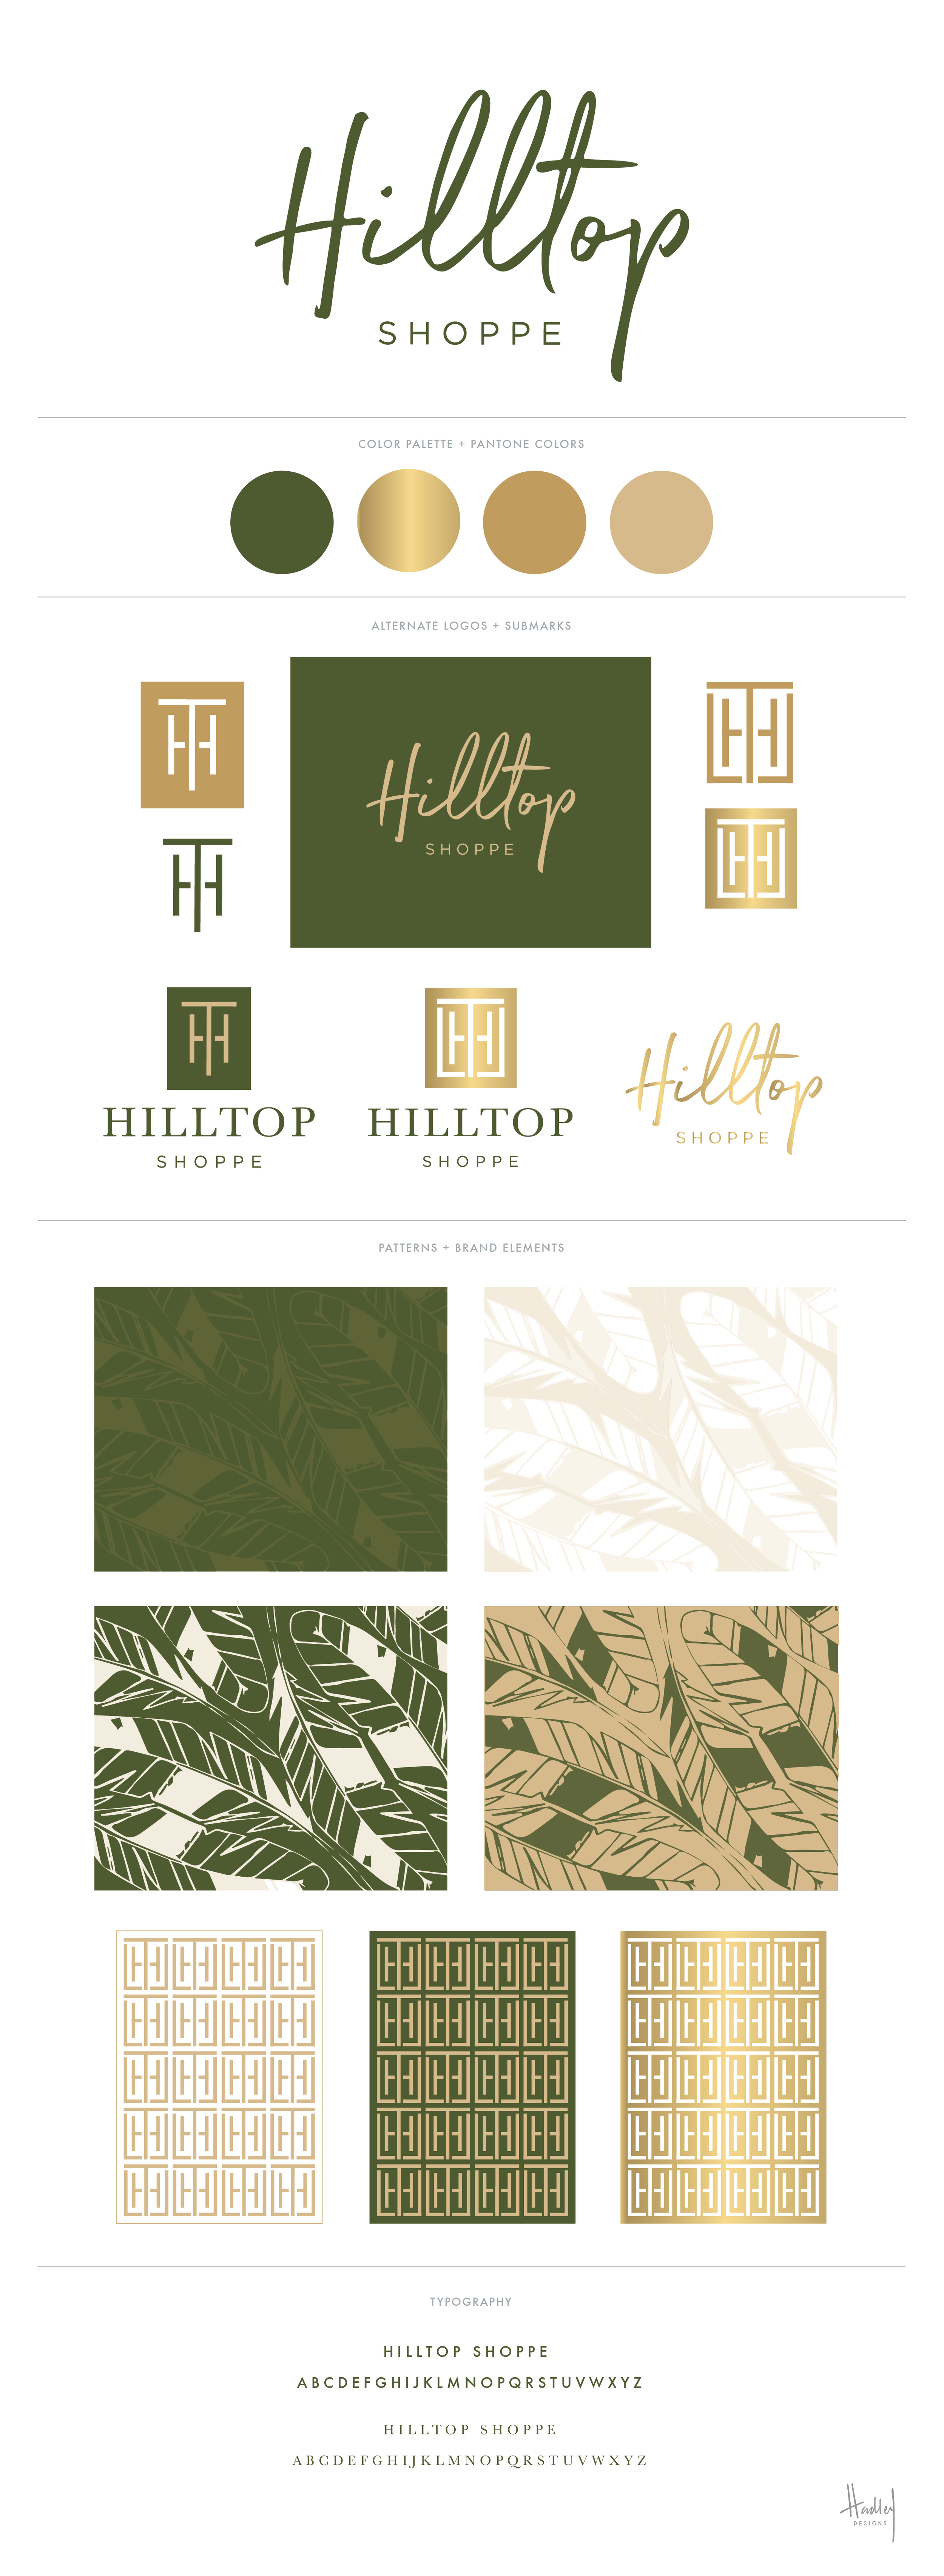 We're thrilled to launch the new branding for  Hilltop Shoppe . This adorable, new shoppe is opening soon on Magazine Street in New Orleans. I'm really hoping that Bruner and I can sneak away to New Orleans for the Grand Opening party in mid-September. Plus, I'd love to finally meet these fabulous owners (Rosalind and Mary-Martin) for the first time in person!New website is in the works...